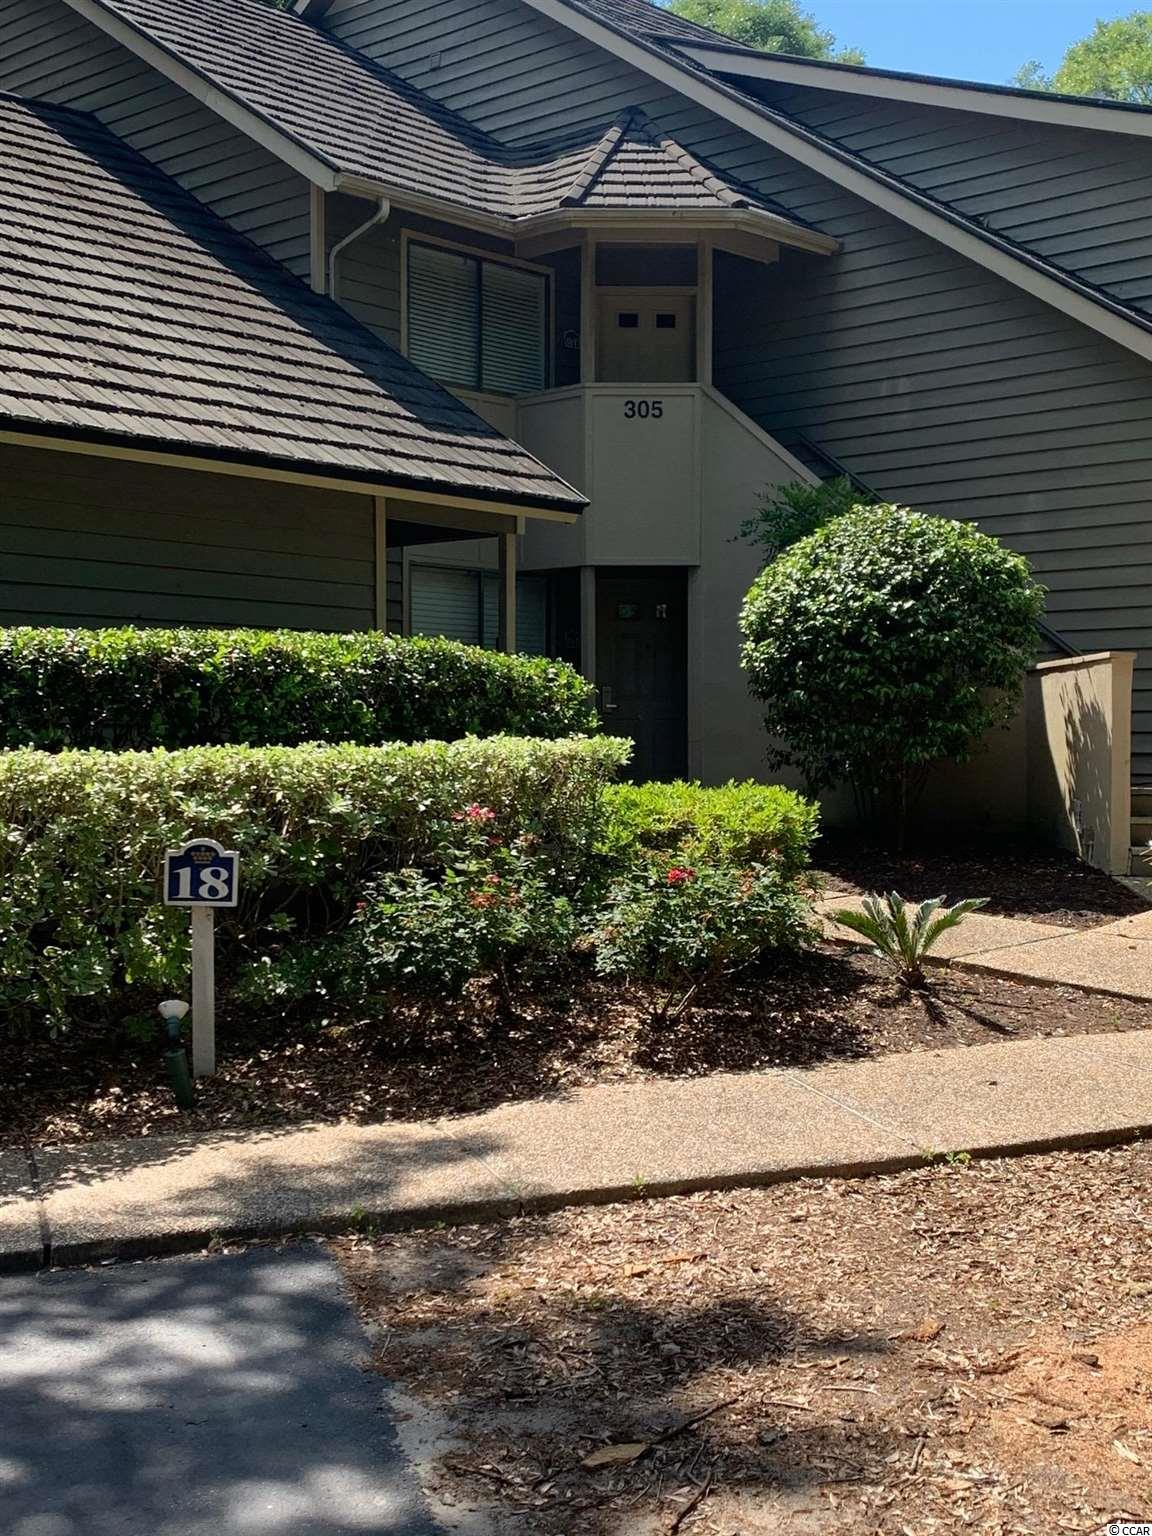 Must see this 3 bedroom/ 3 bath located in Kingston Plantation in highly desired Arcadian Shores section of Myrtle Beach.  This unit is located in the Richmond Park section of this Gated Oceanfront community.  The unit was professionally decorated by Sheila Morgan interiors and seller have loving cared for the unit with tons of upgrades. This is an open floor plan in the living and dining areas and you won't be disappointed in the over sized kitchen. The kitchen has been upgraded with Granite countertop and Stainless Steel Appliances.